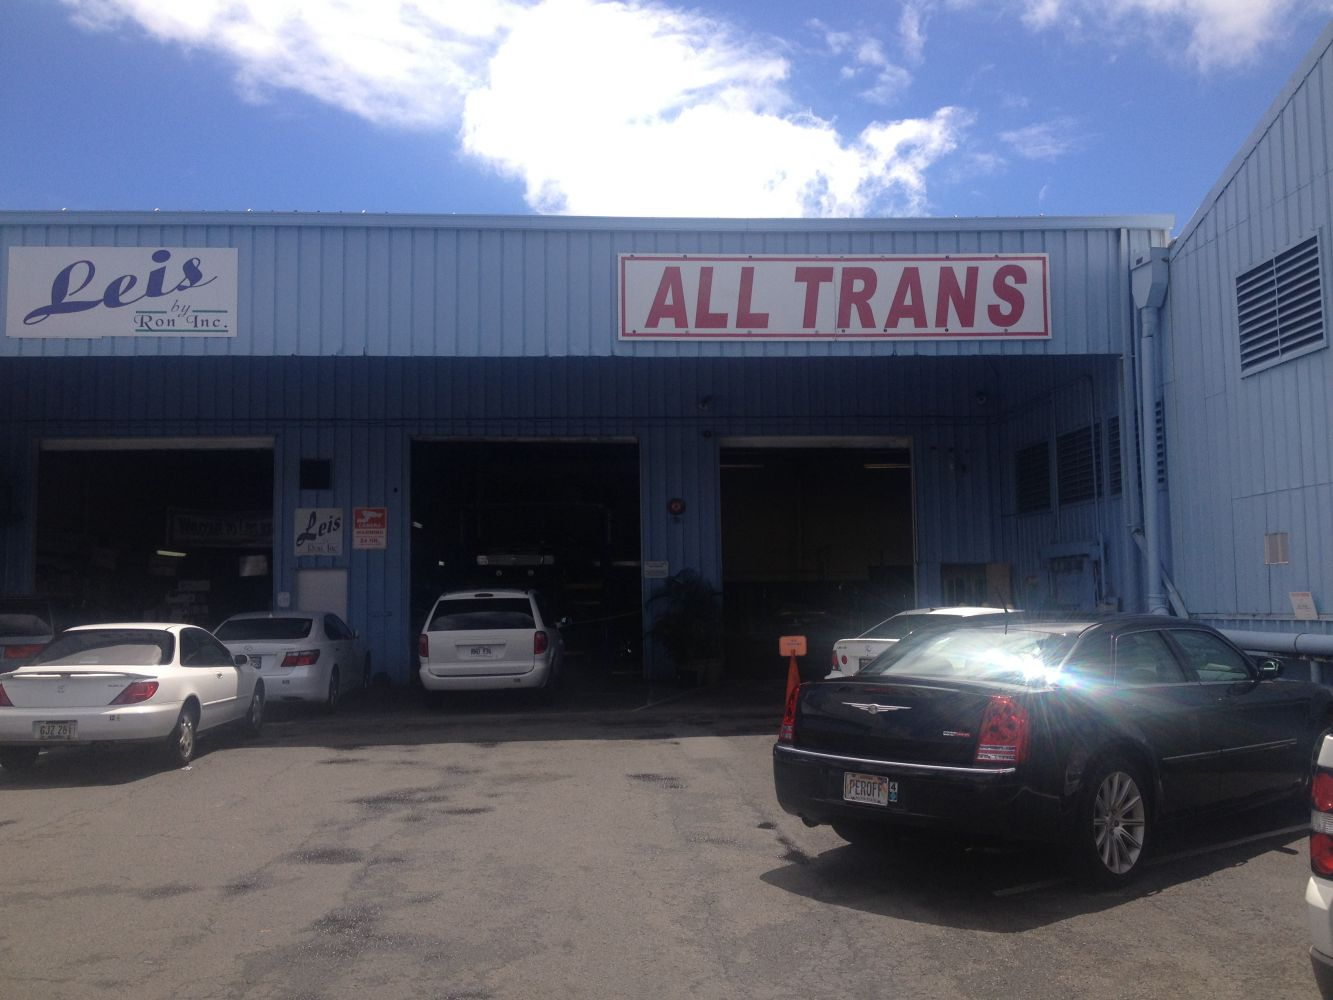 All Trans Office in Mapunapuna on Oahu